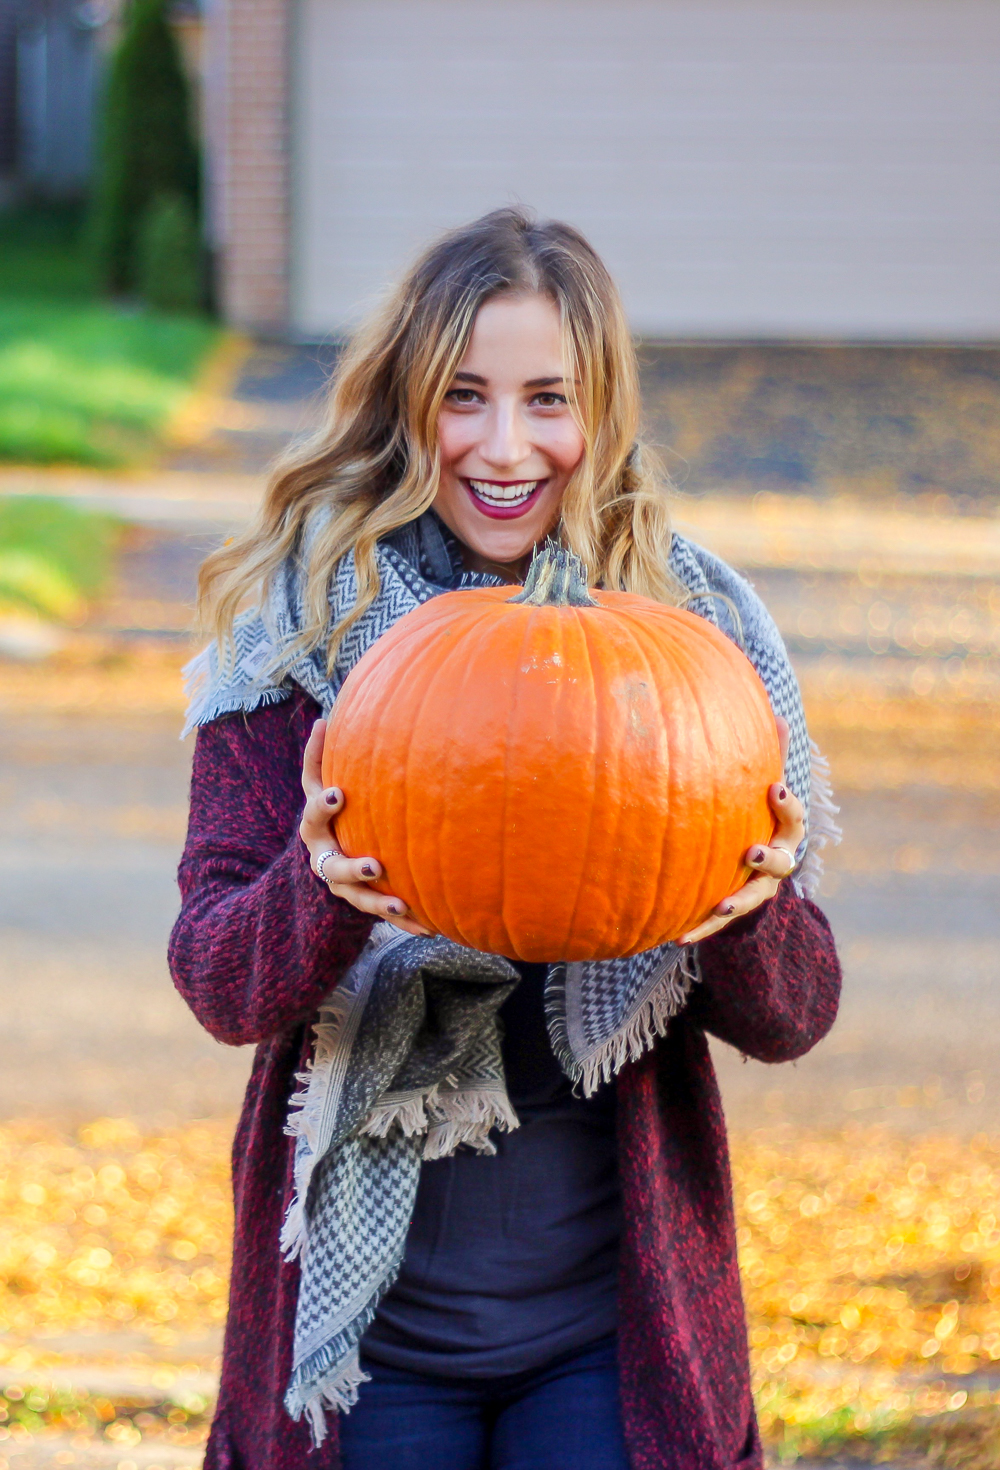 Favourite parts of fall - good hair days and pumpkins